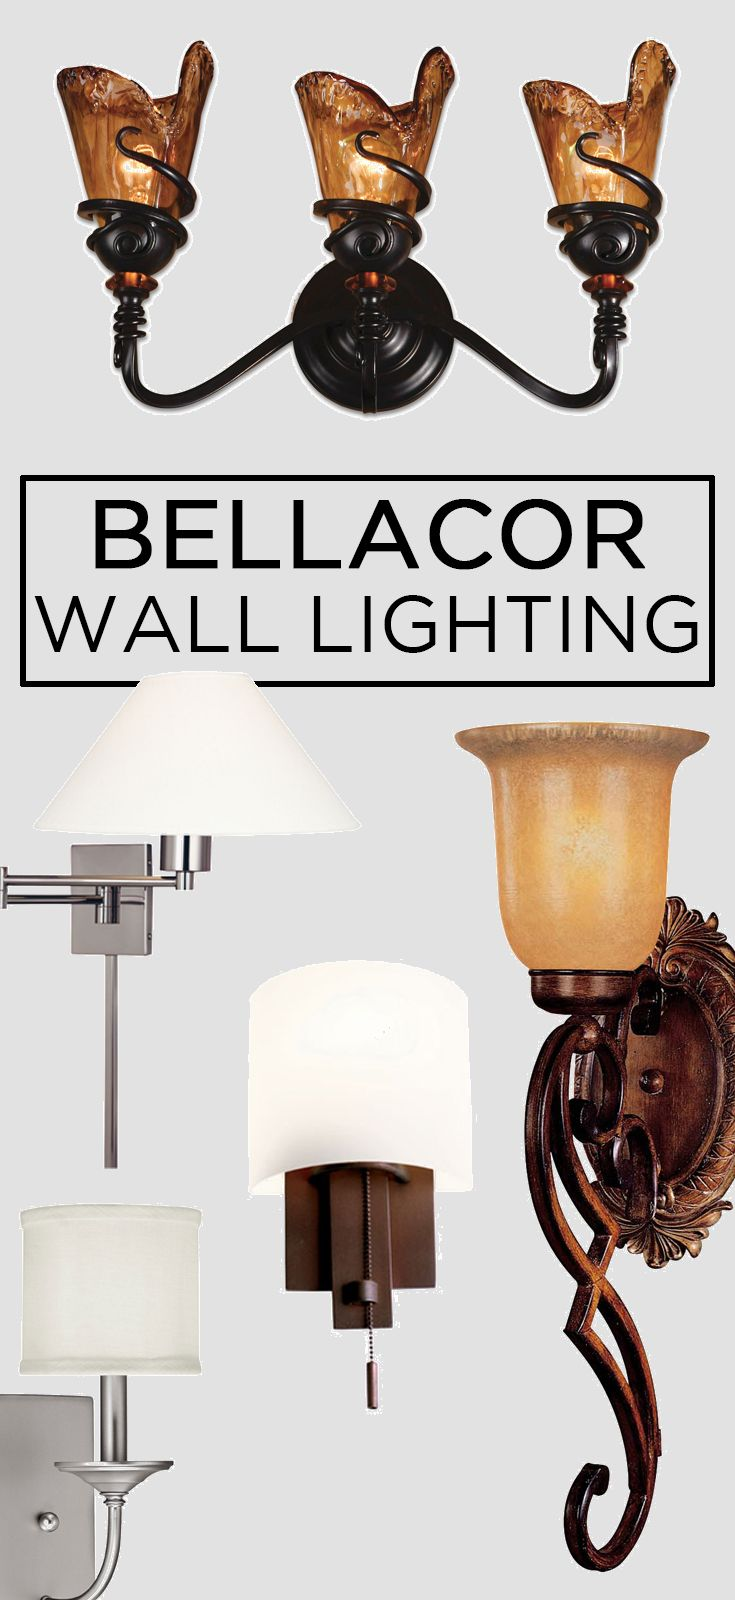 Finding The Right Wall Lighting Is Well Worth Your Time One Of The Best Things About Wall Fixtures Is They S Wall Lights Wall Light Fixtures Amazing Bathrooms